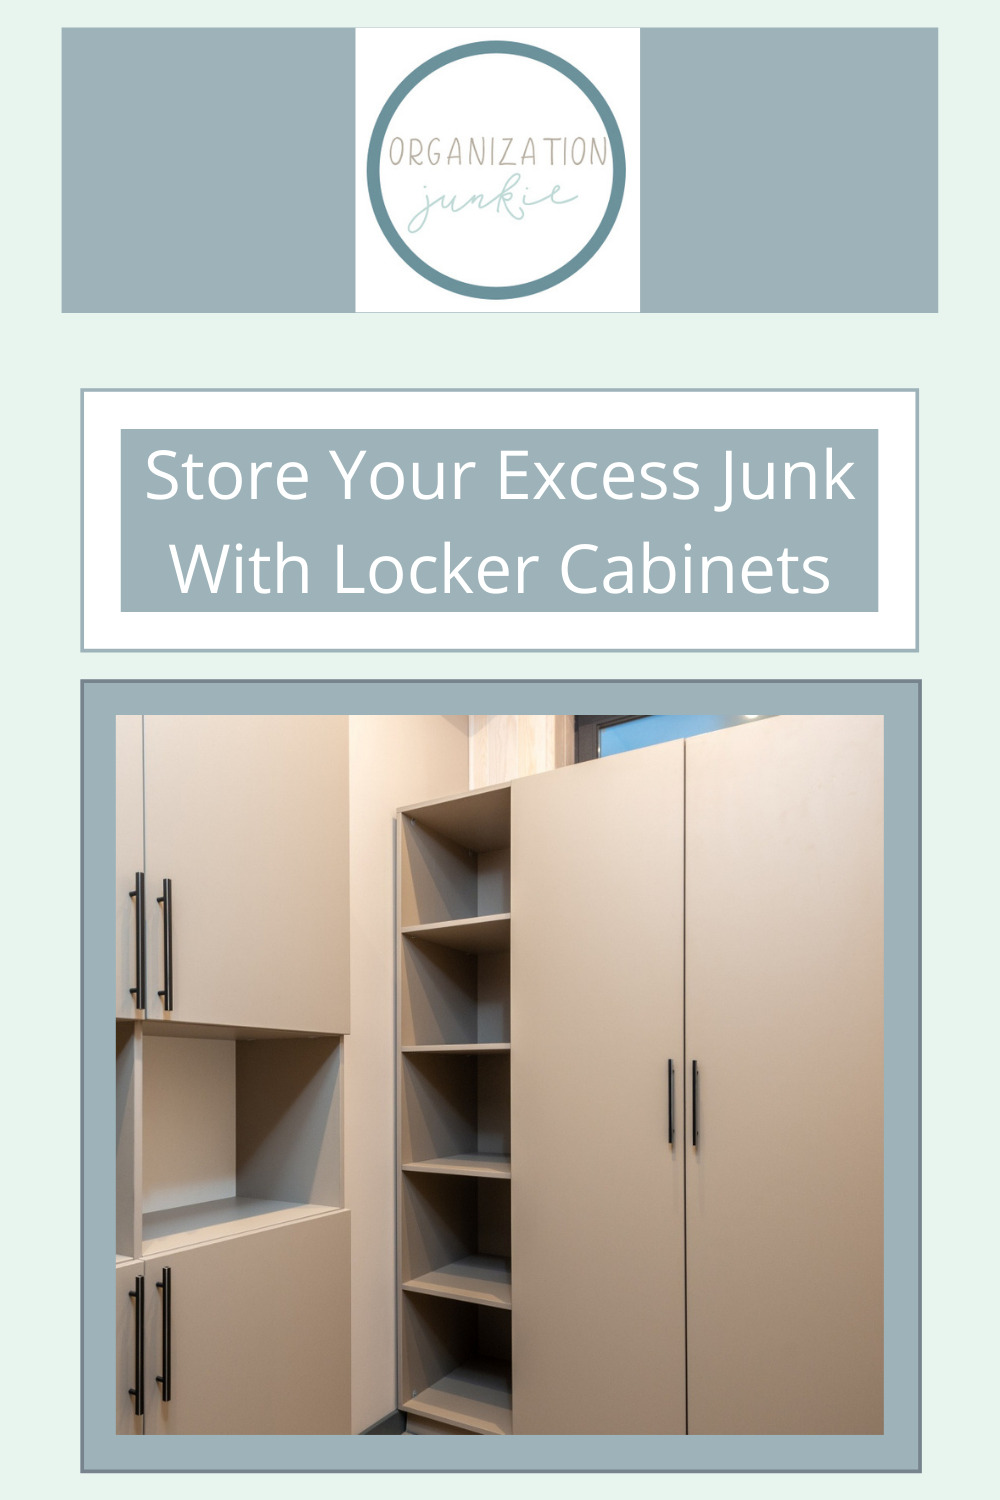 Organizationjunkie.com is stacked with creative ideas for keeping a clean and organized space. Find out how you can wipe out clutter in an instant. These clever ideas will have your craft room totally organized in no time!